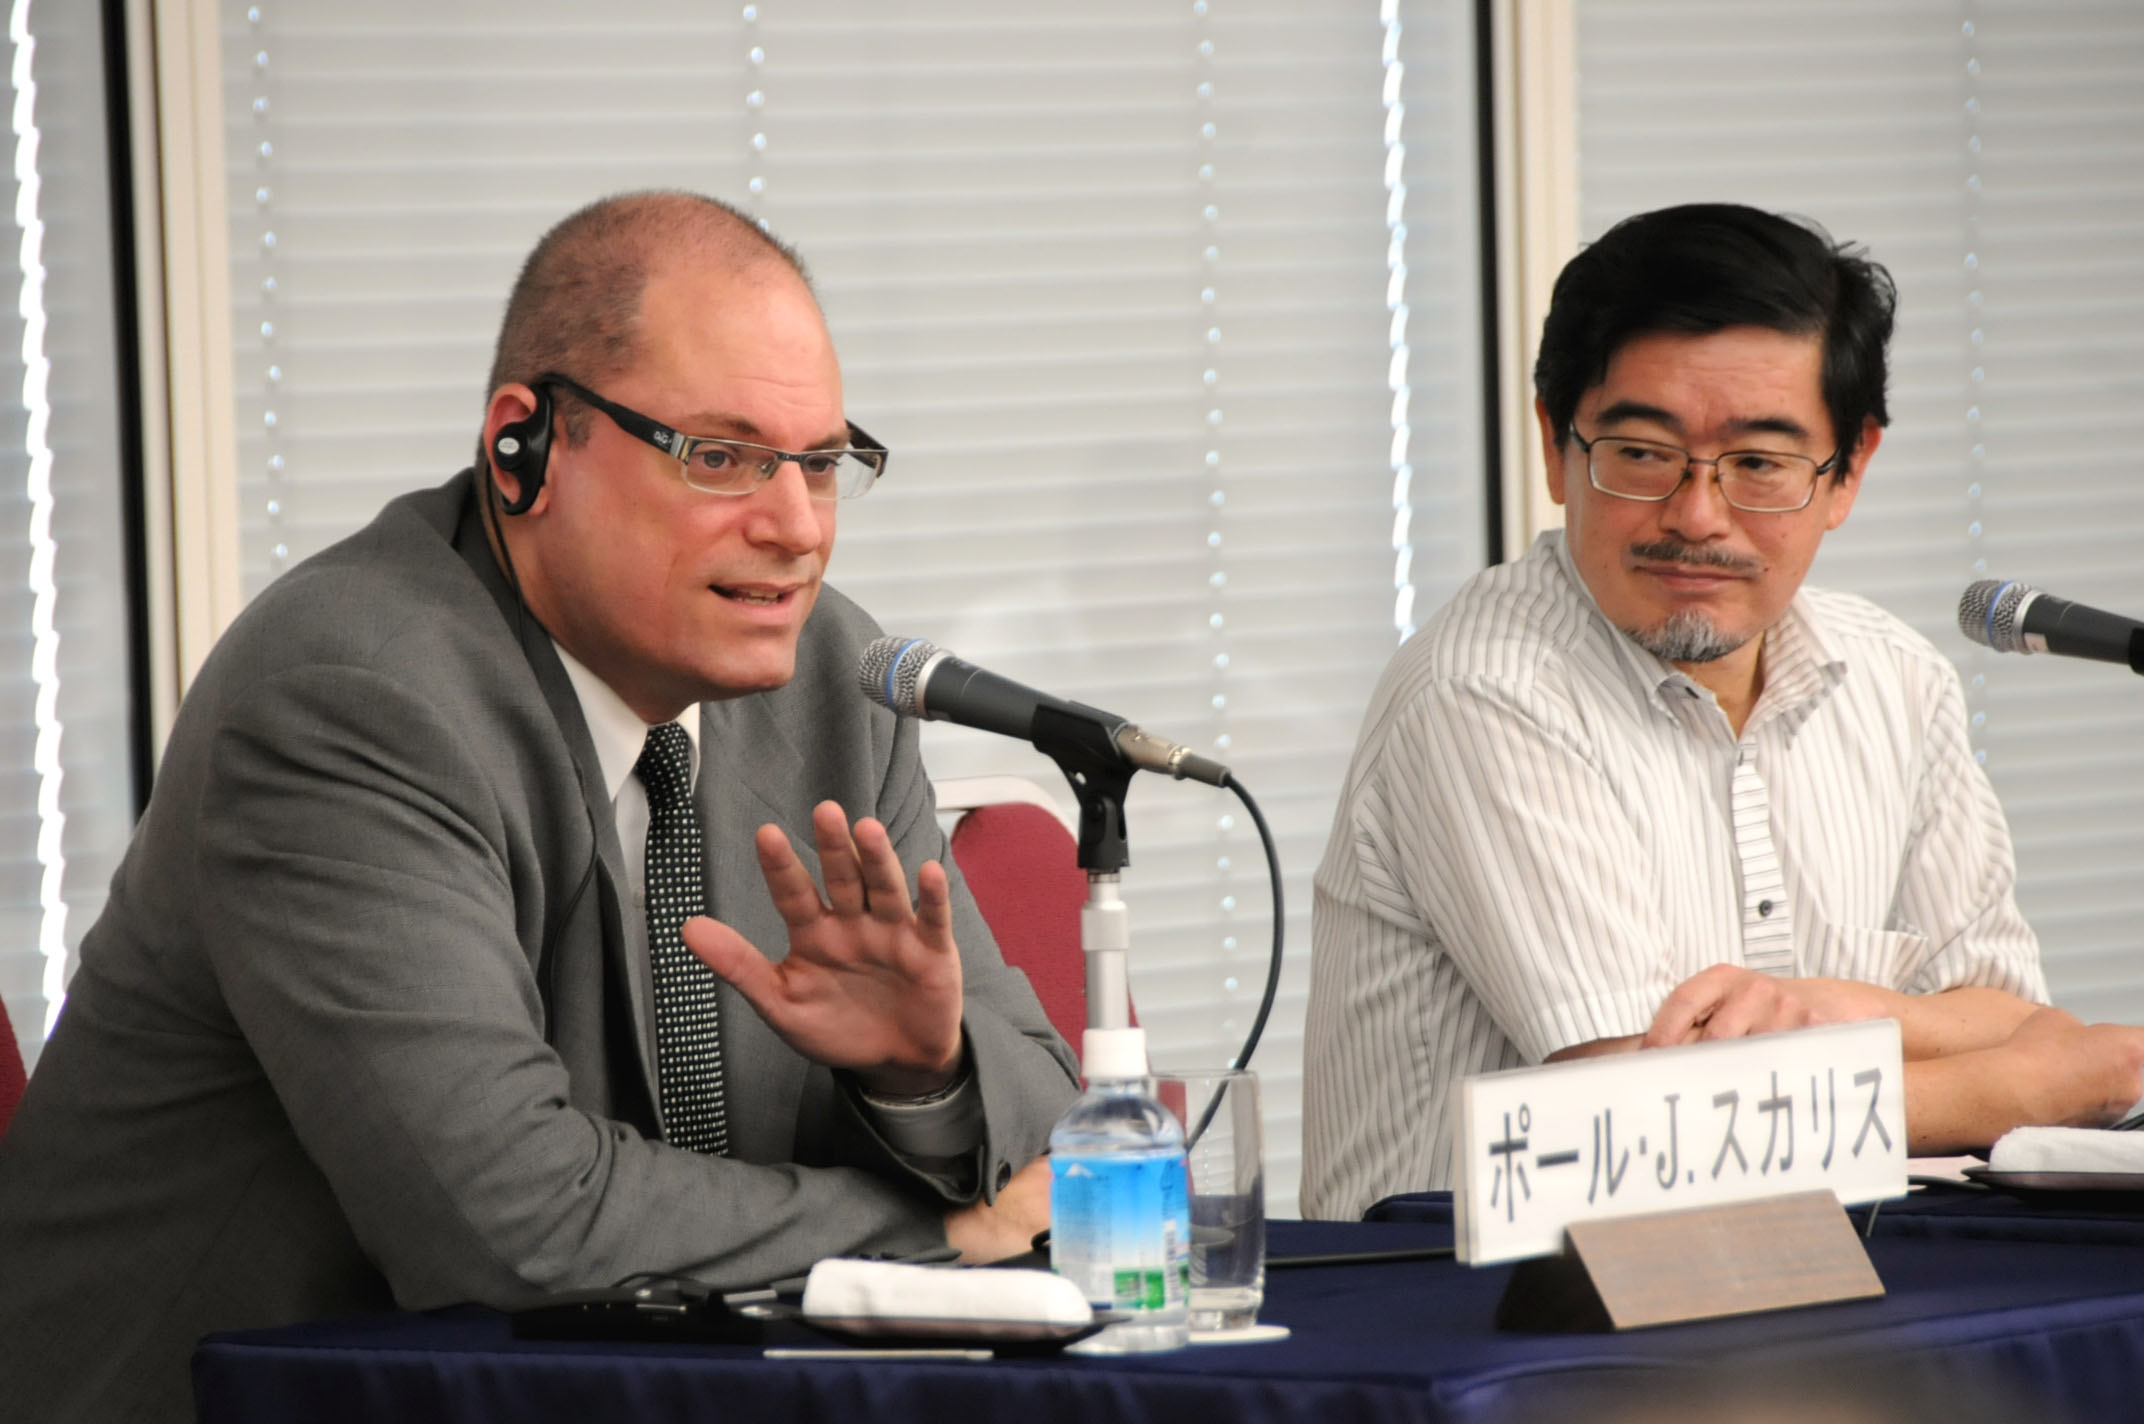 Paul Scalise (left) of the University of Tokyo's Institute of Social Science discusses Japan's energy policy as Kenji Yamaji, a professor emeritus of the University of Tokyo and director general of the Research Institute of Innovative Technology for the Earth, looks on during an Aug. 3 seminar at Keidanren Kaikan in Tokyo. | SATOKO KAWASAKI